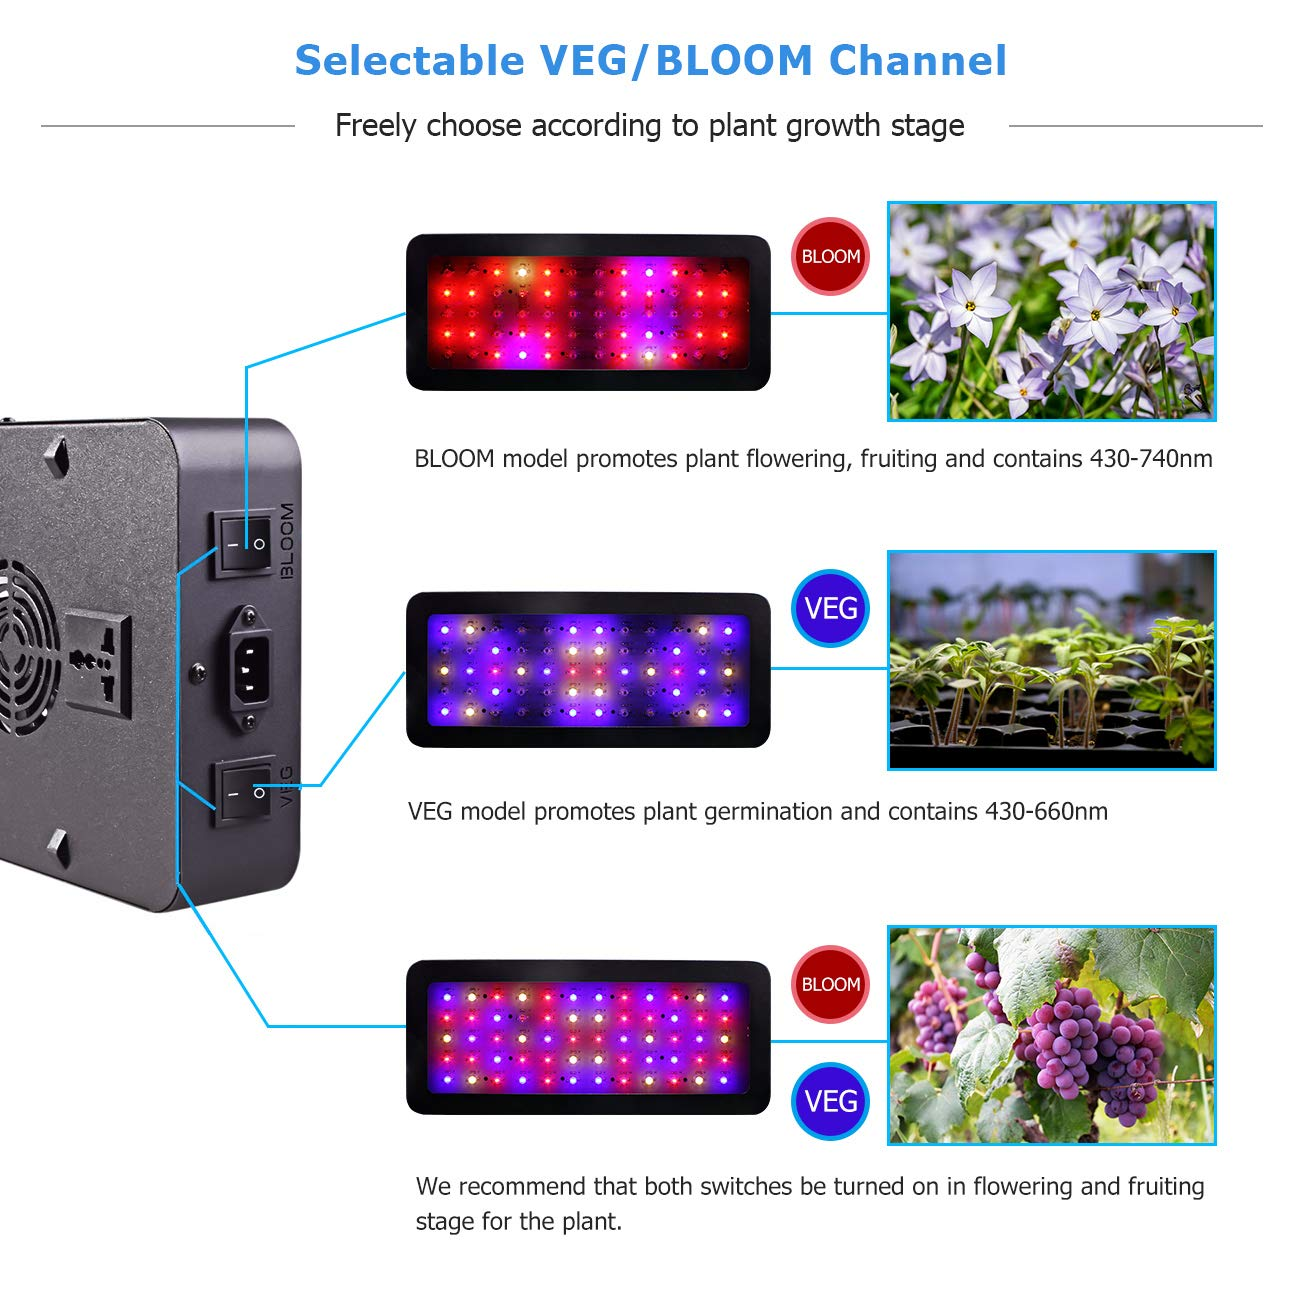 Golspark Indoor LED Grow Light, 600 Watt Full Spectrum Plant Light with Switch, IR&UV Growing Lamp Kits for Greenhouse Hydroponic Seedling Veg and Flower by Golspark (Image #3)